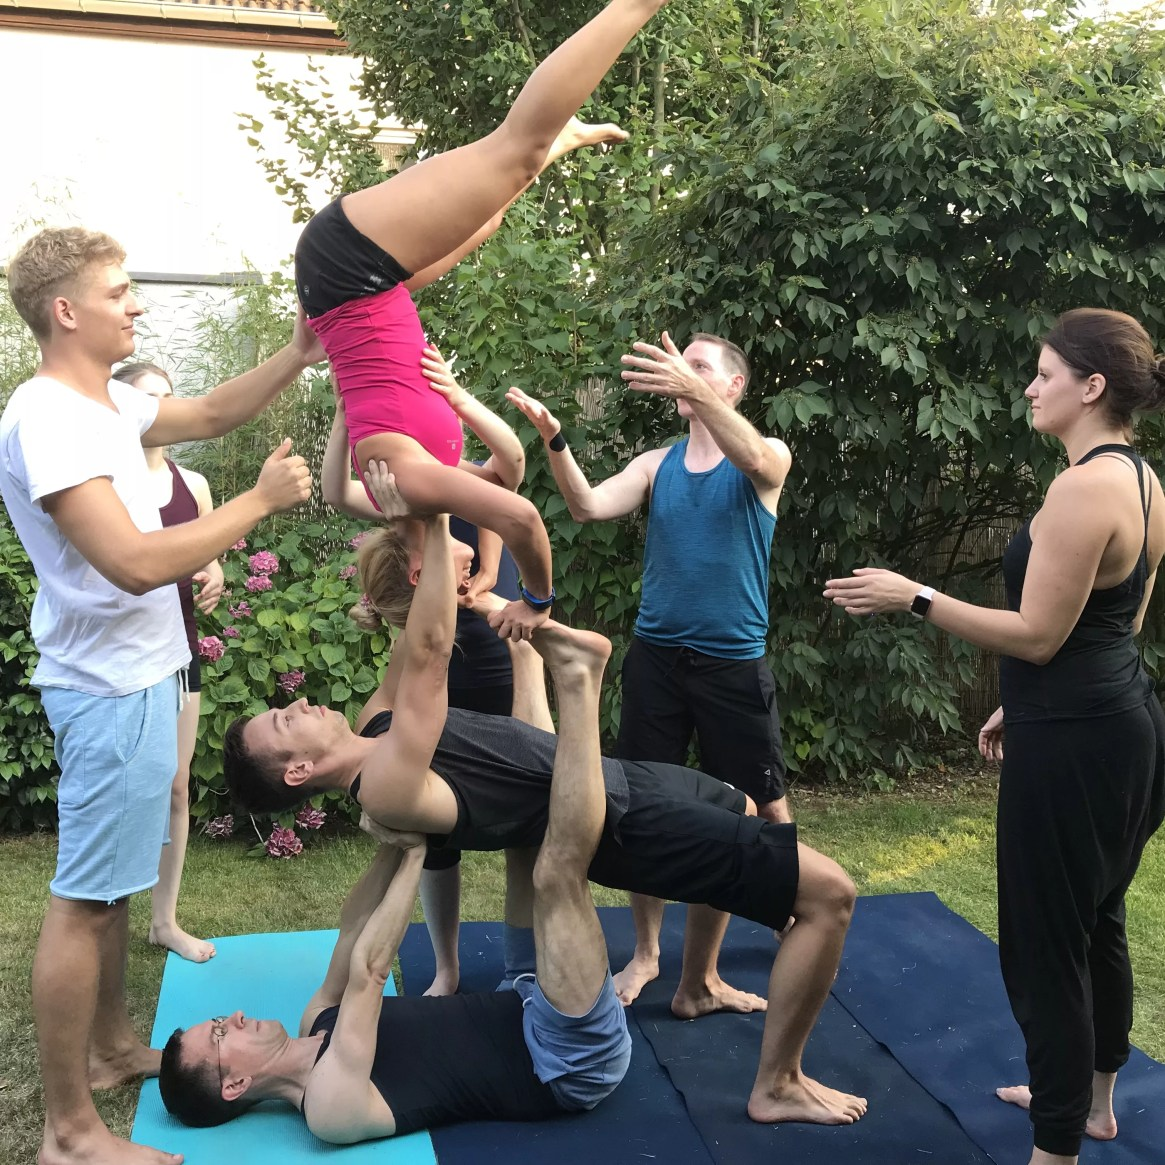 AcroYoga, stronger together